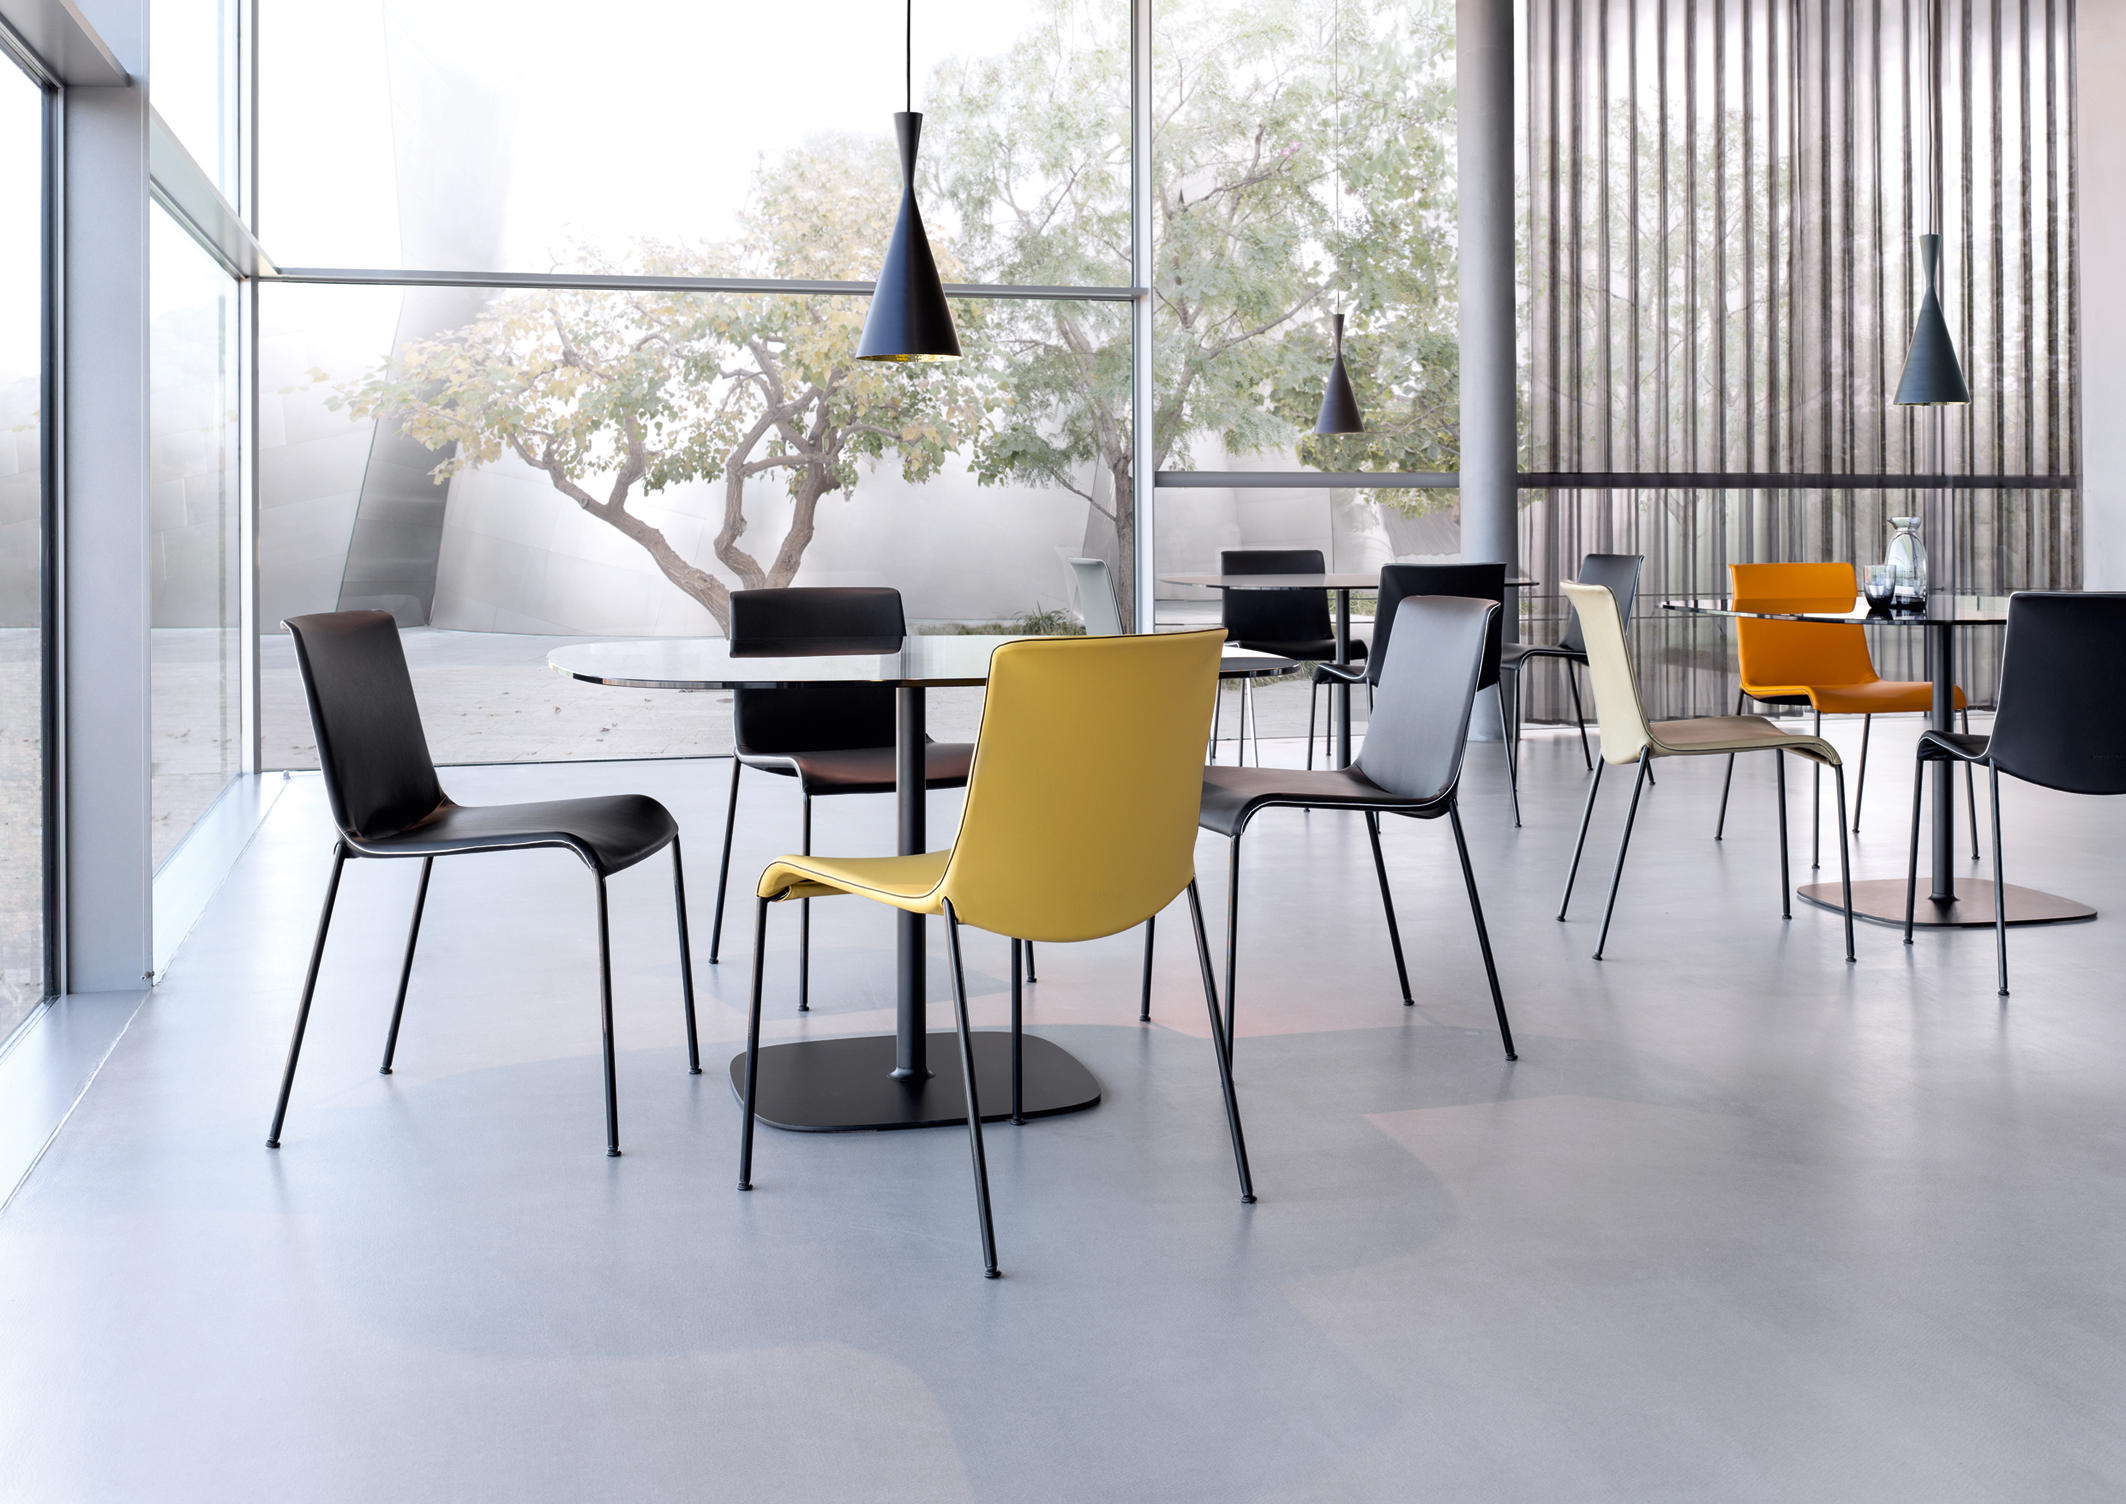 liz wood visitors chairs side chairs from walter knoll architonic. Black Bedroom Furniture Sets. Home Design Ideas